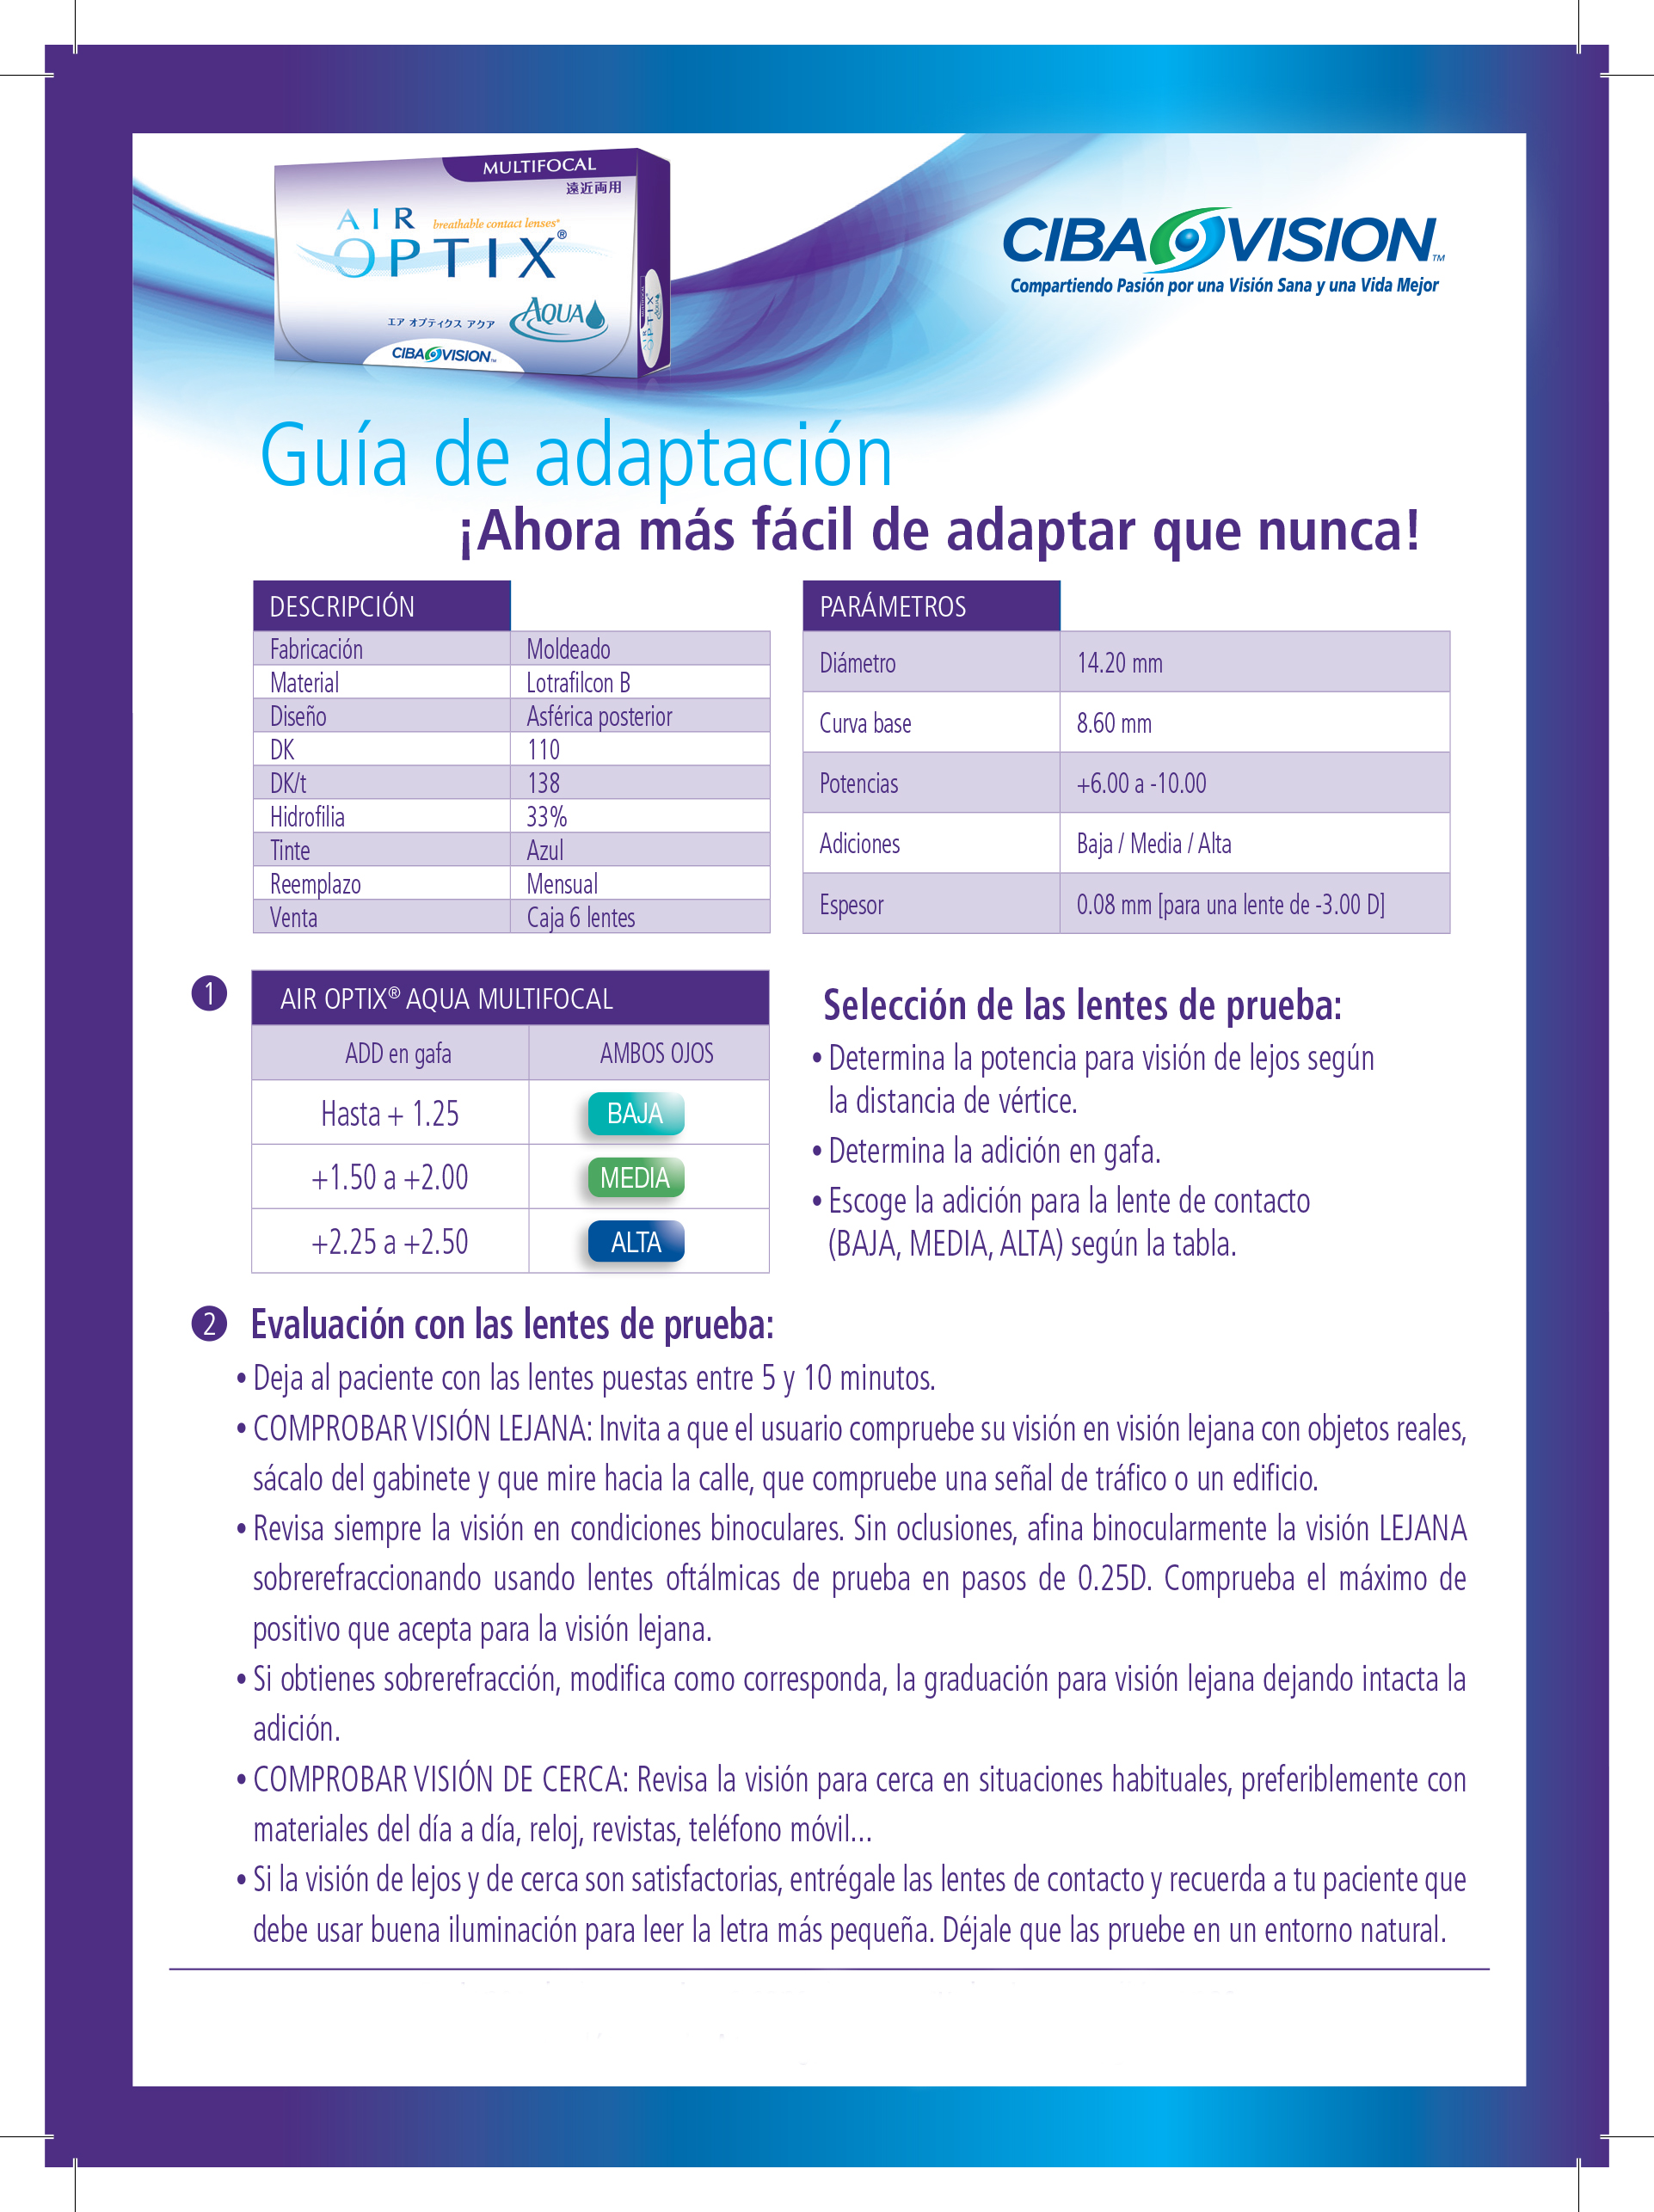 a36da7d273 Guía de adaptación para el uso de Air Optix Aqua MULTIFOCAL - Grupo ...